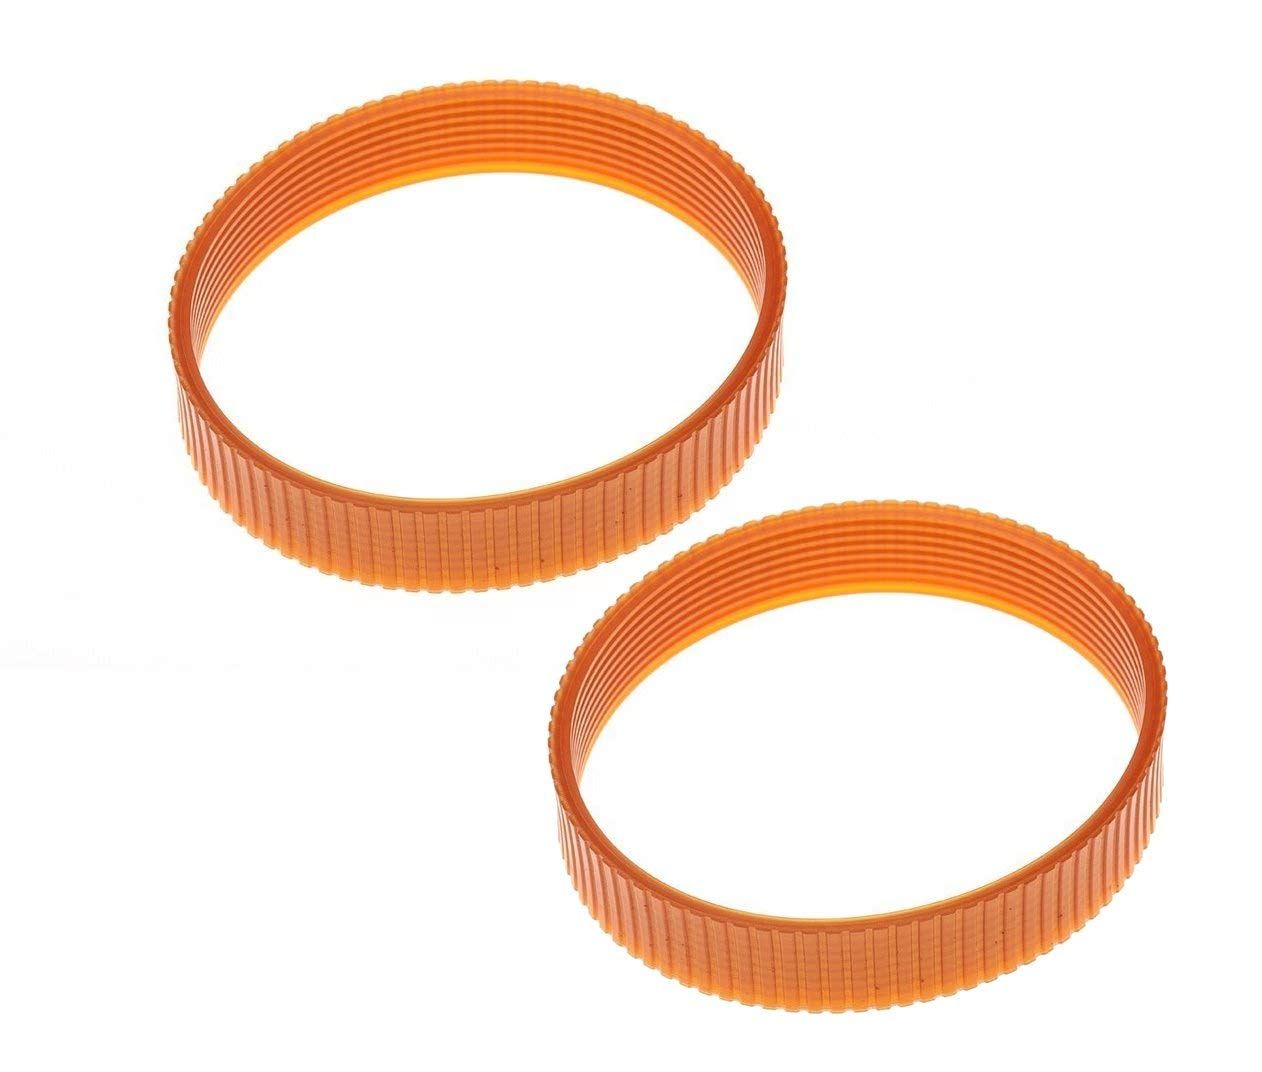 Planer Replacement Belt 429962-08 for DeWalt DW734 Planer - 2 Pack